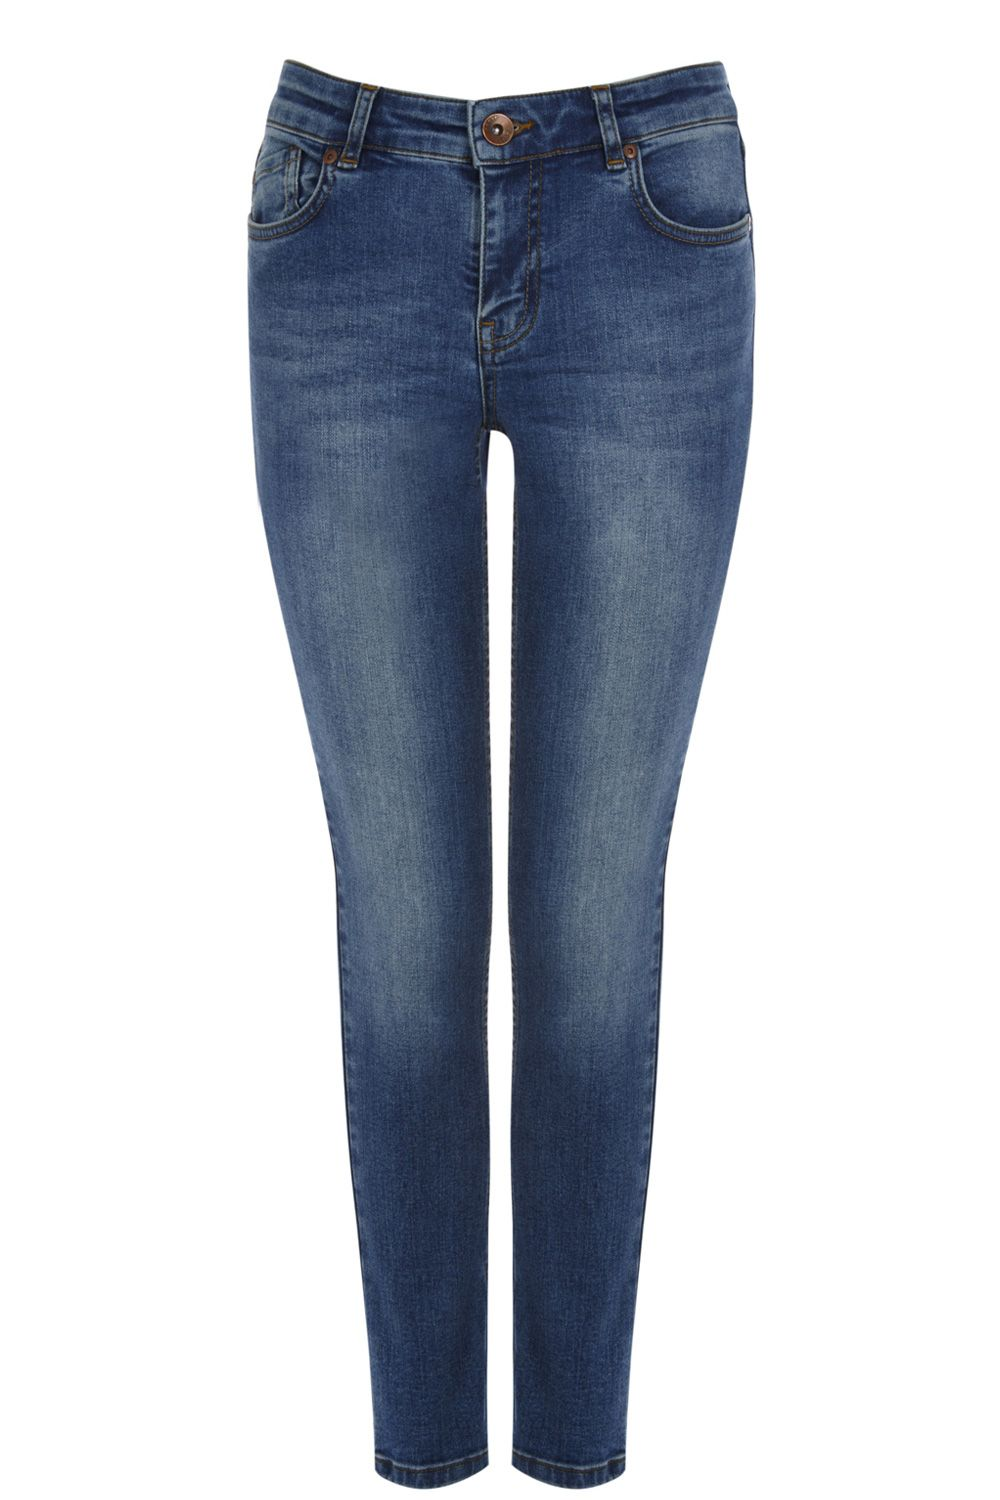 Vienna cherry crop jeans